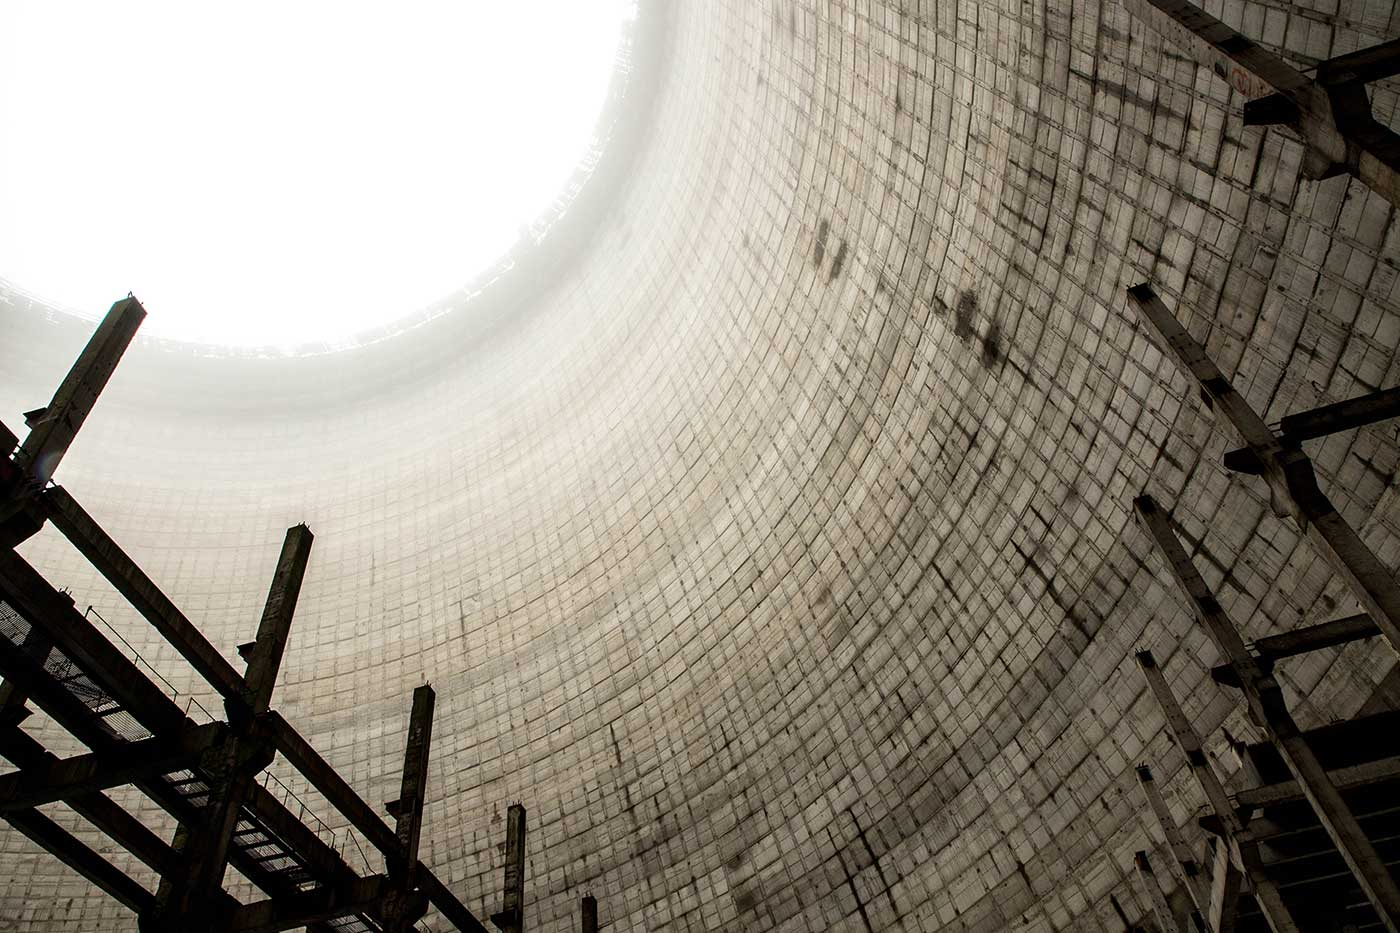 January mist gathers inside the cooling tower that was being built for Chernobyl Reactor Block 5. Construction was halted in 1986, after the disaster, leaving both the new reactor block and this cooling tower unfinished.